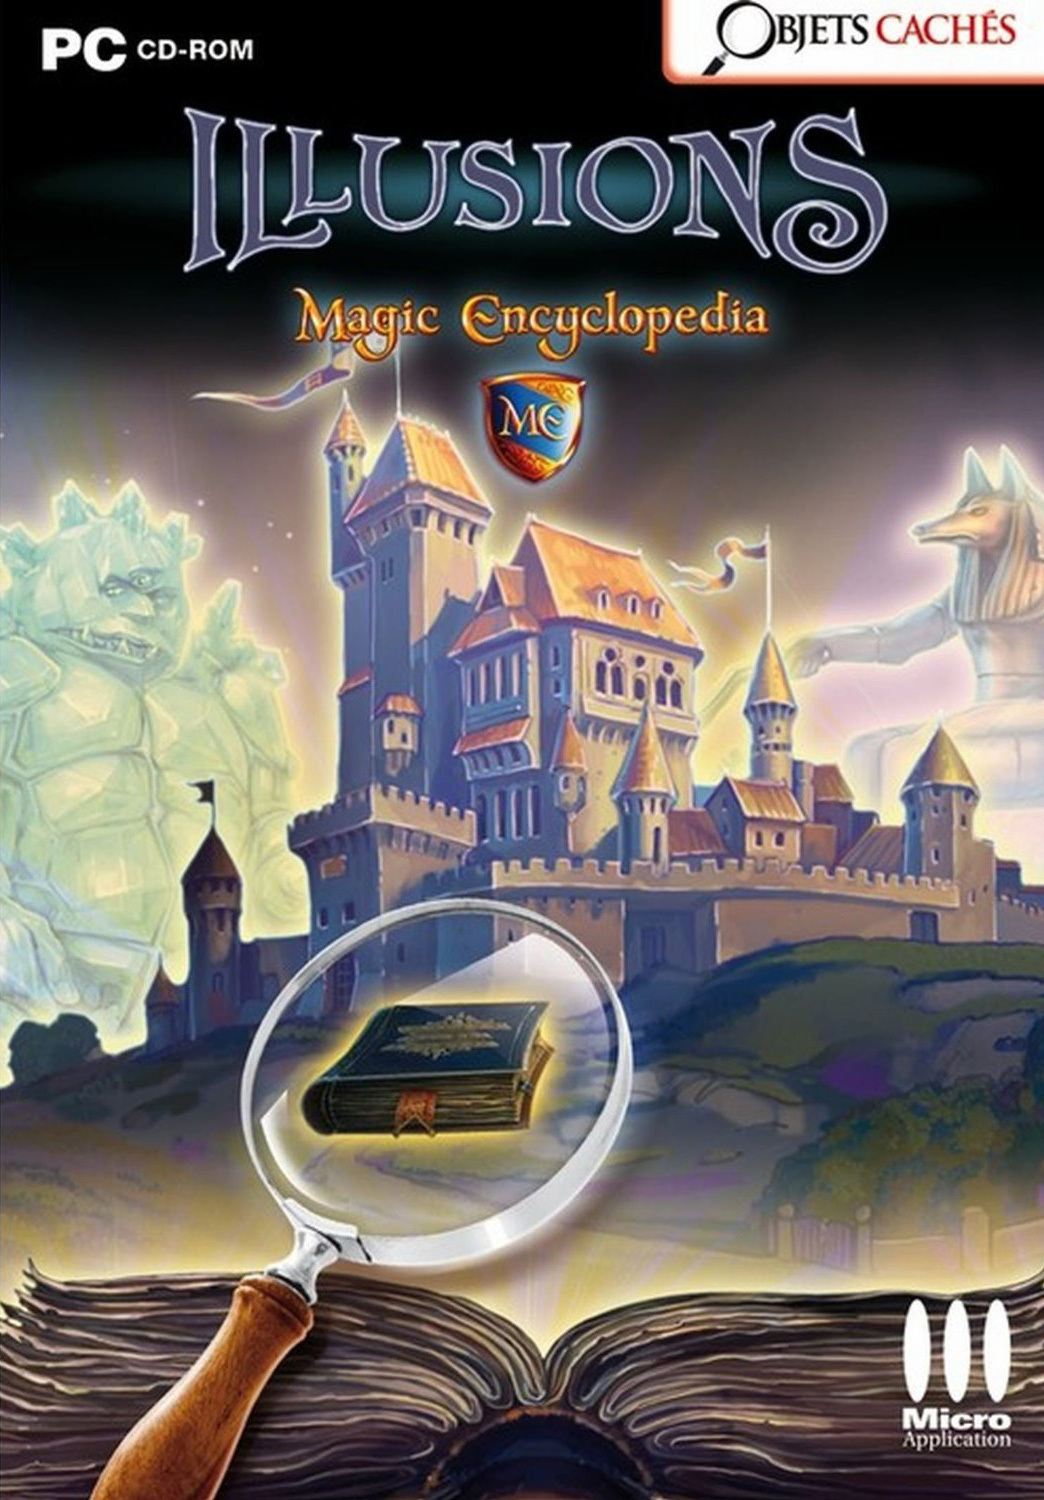 [MULTI] Magic Encyclopedia 3 : Illusions [PC] [FRENCH]